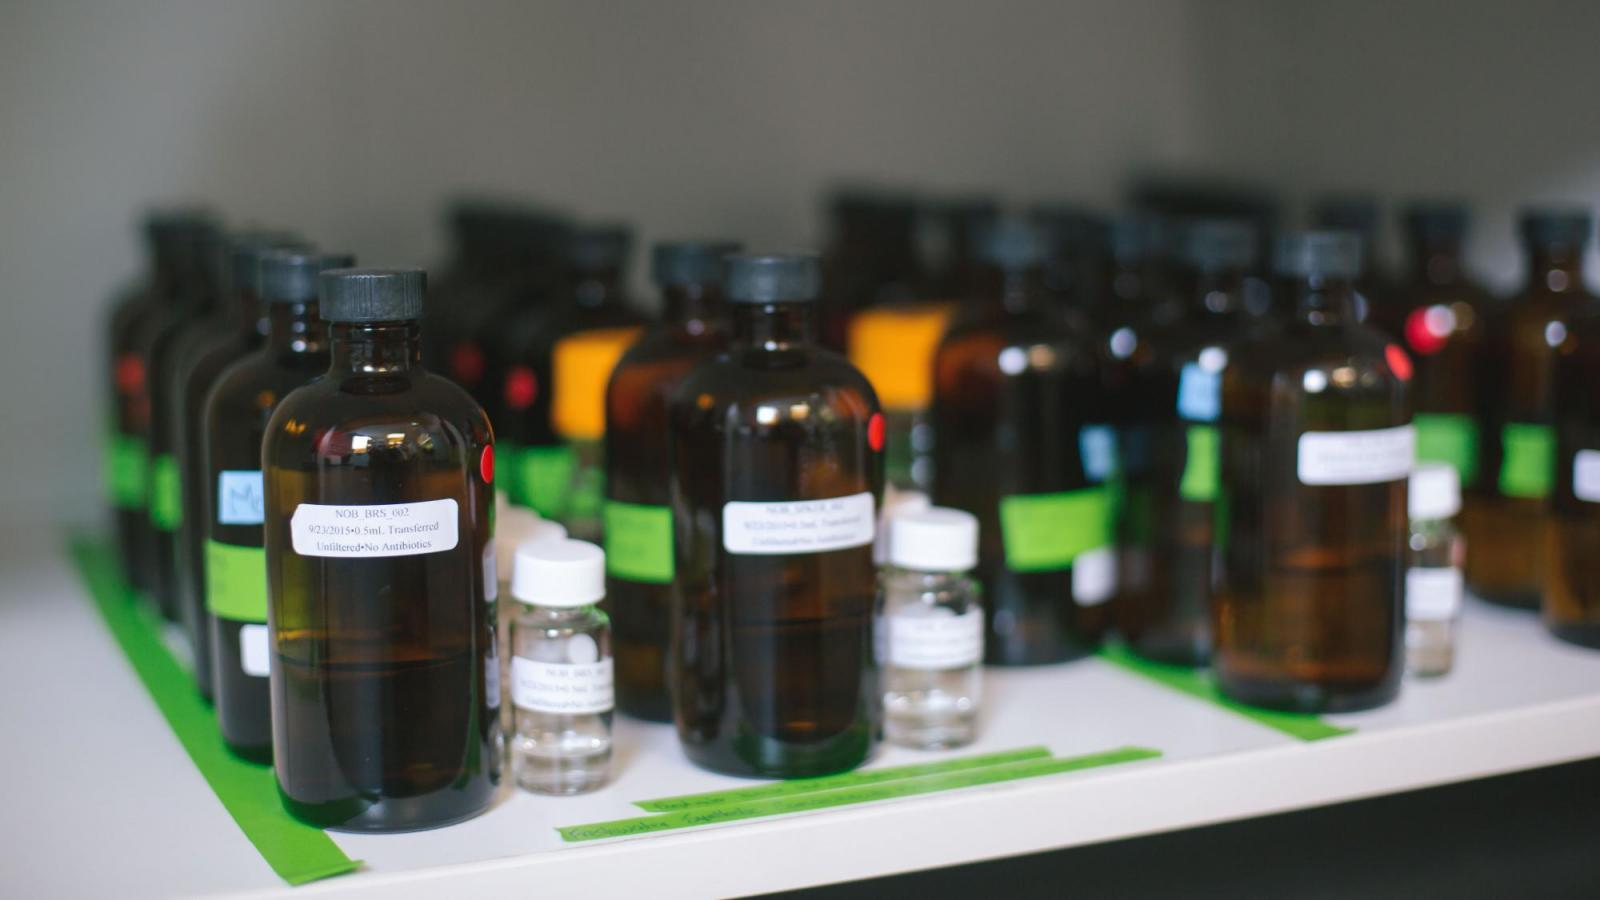 Research samples in bottles